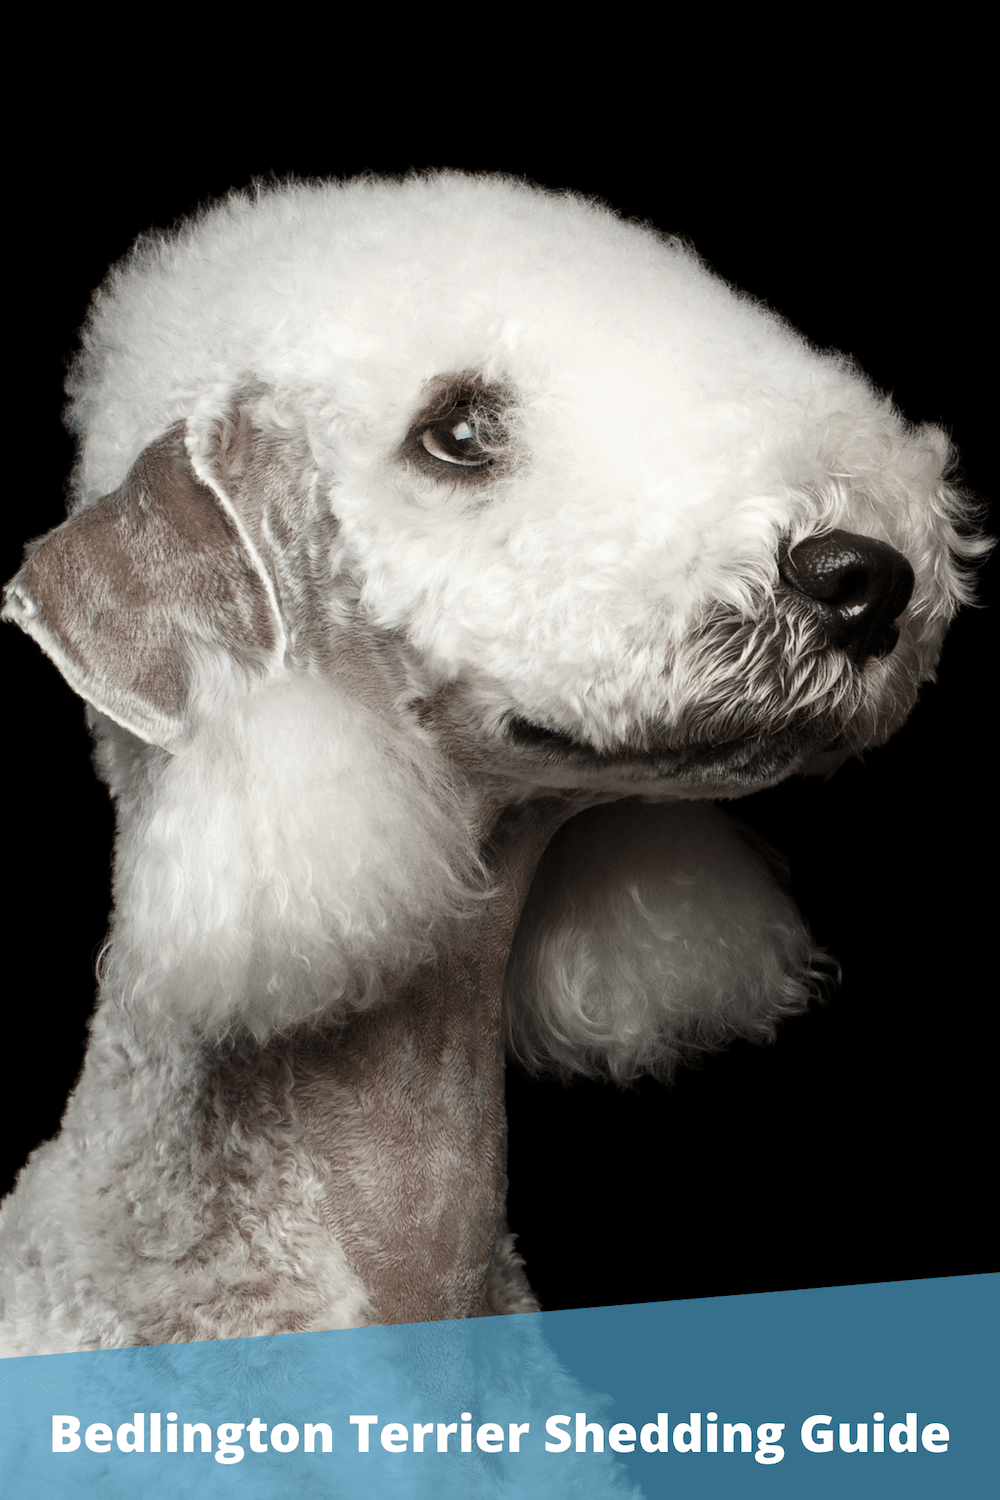 Do Bedlington Terriers Shed? (What To Expect)